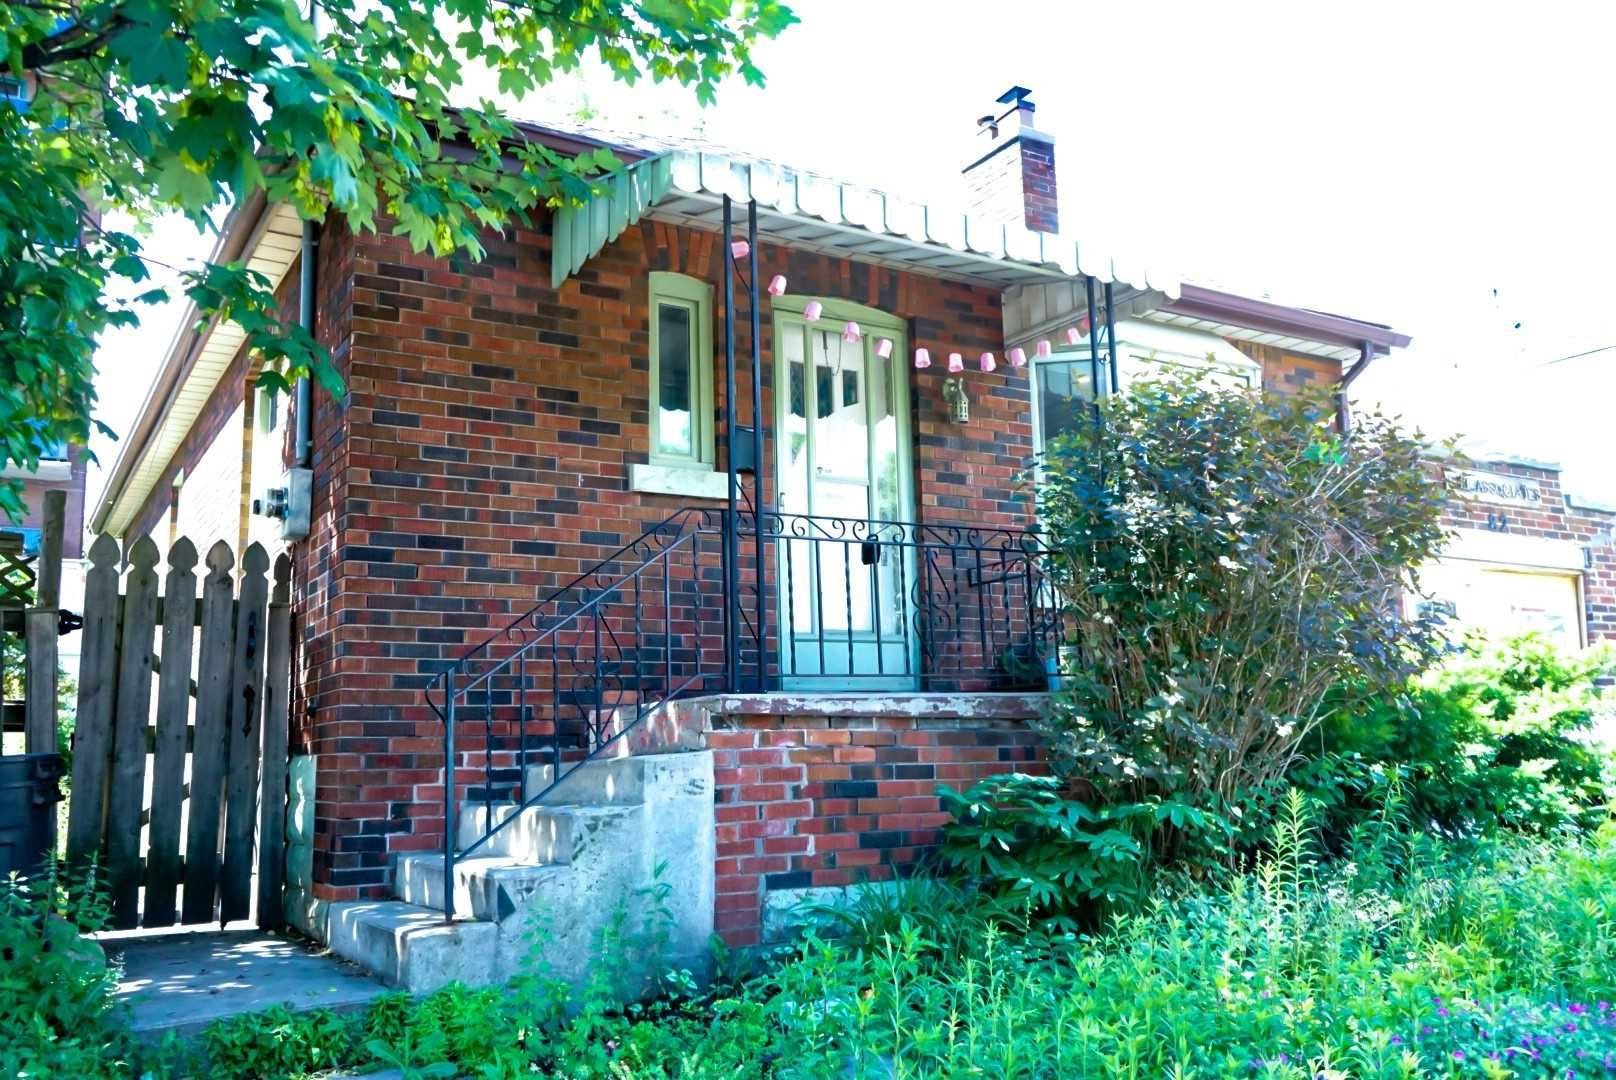 Main Photo: 82 Forest Ave in Hamilton: Corktown Freehold for lease ()  : MLS®# X5295157